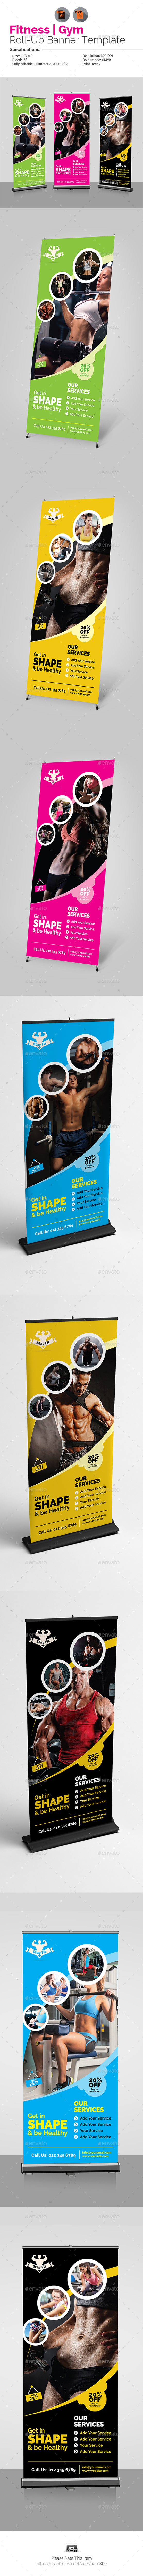 Fitness Roll-Up Banner Template - Signage Print Templates